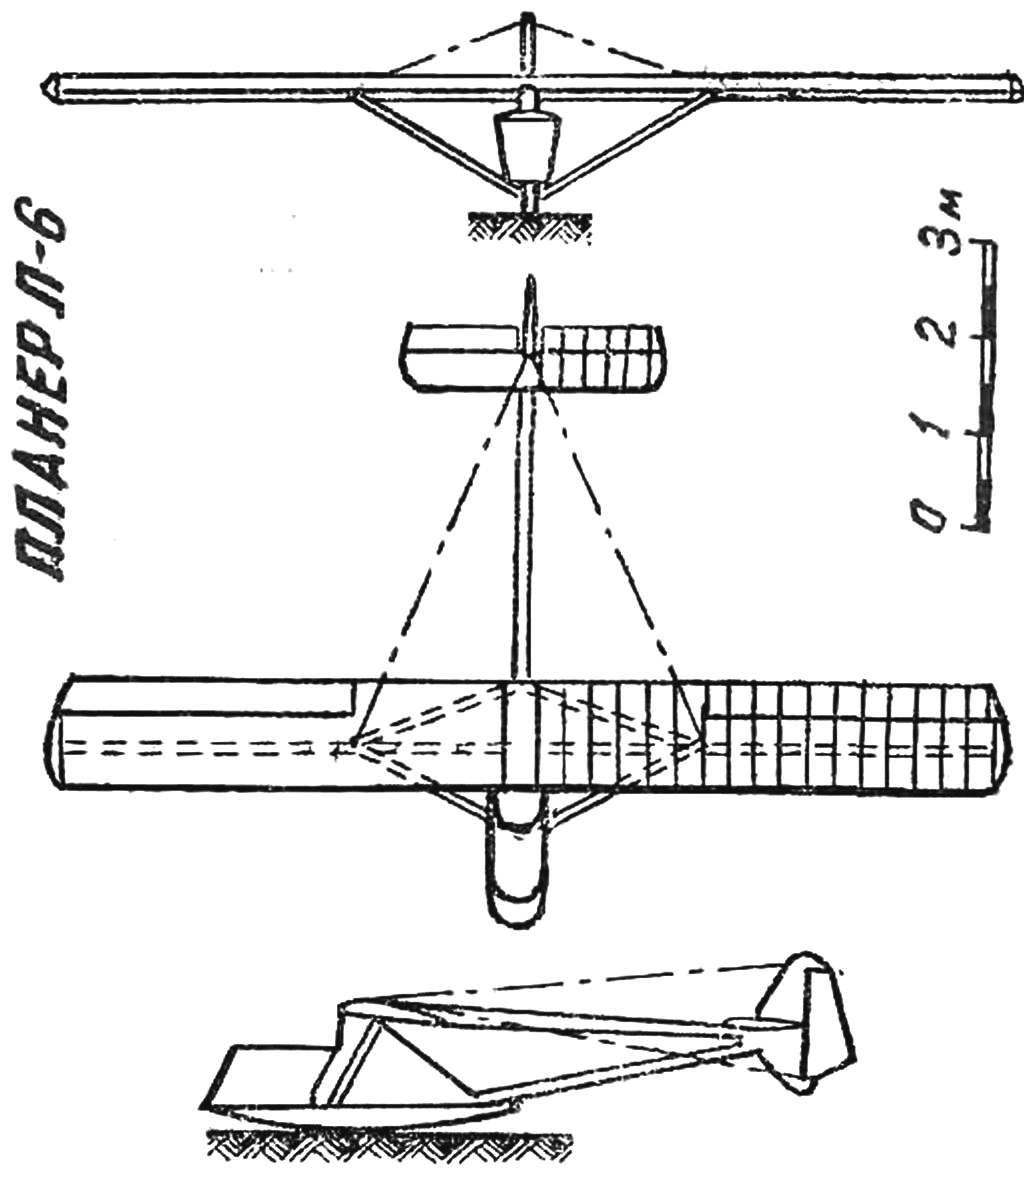 Fig. 5. Training glider designed by S. Luchina.